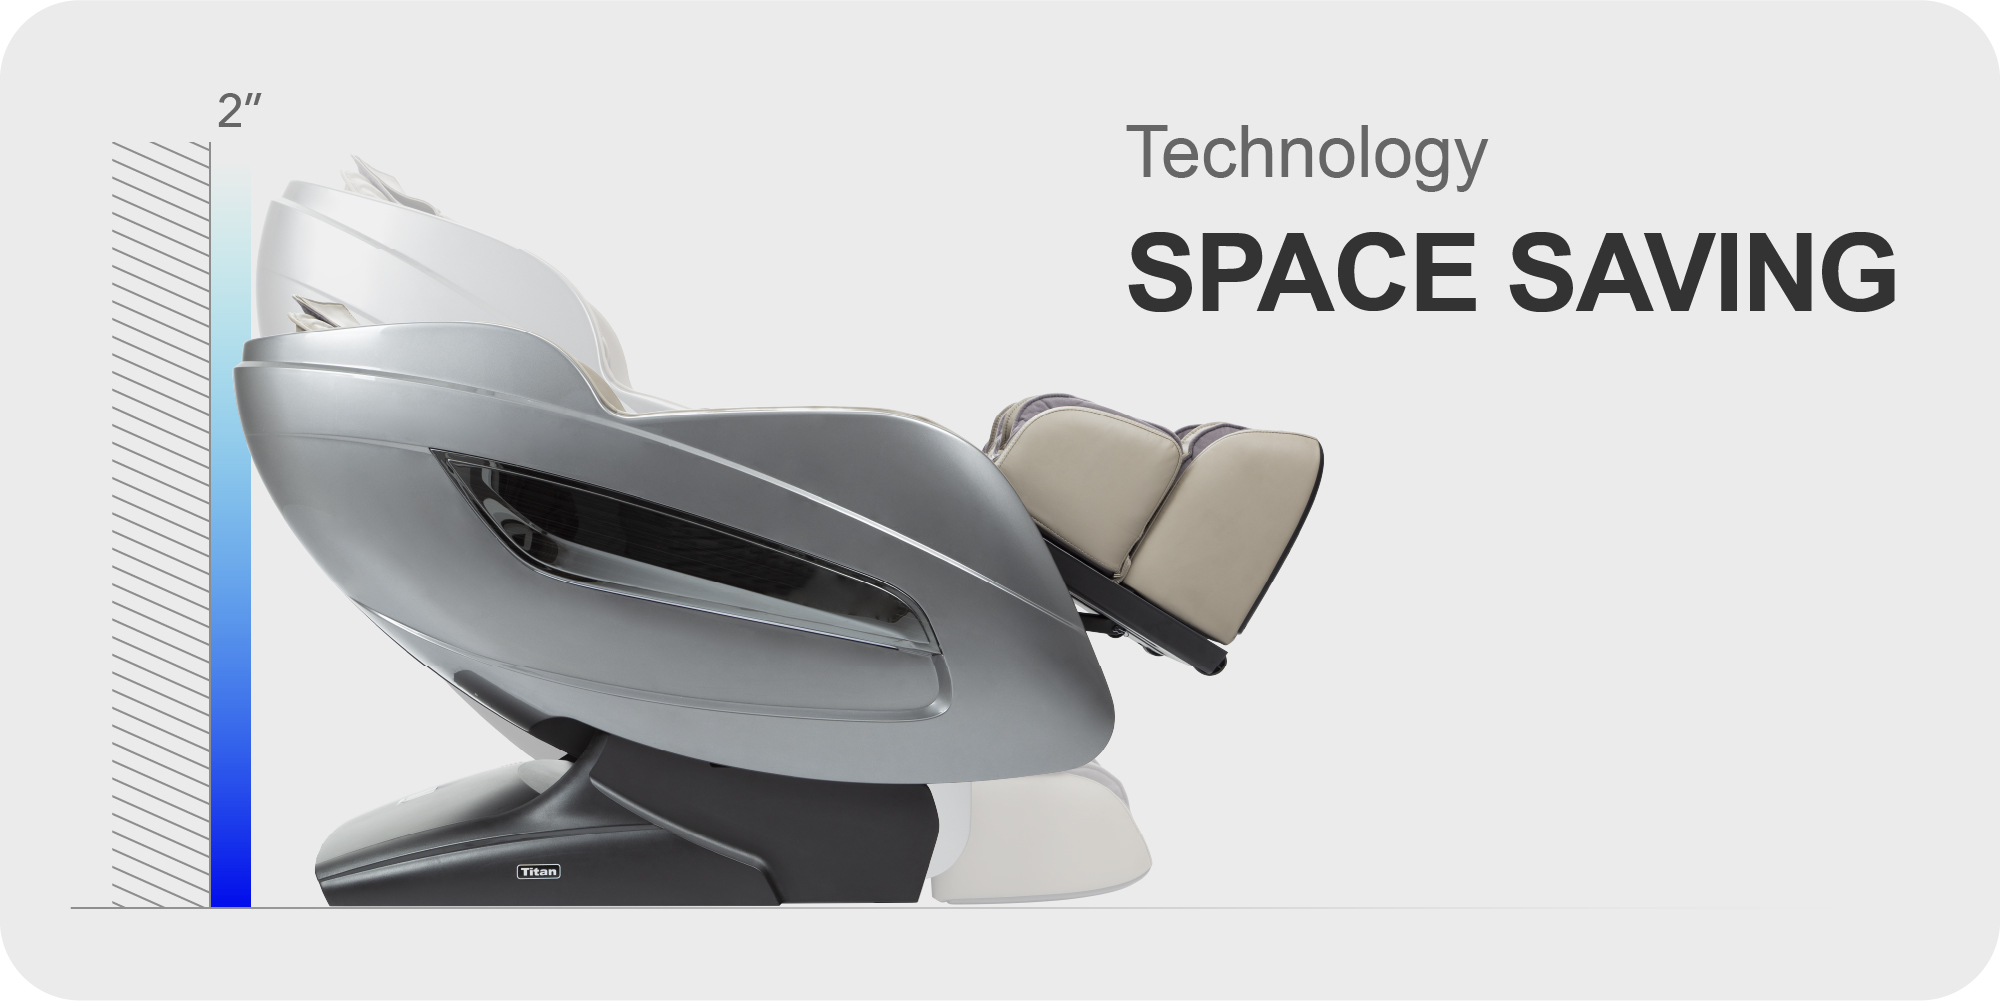 Technology Space Saving